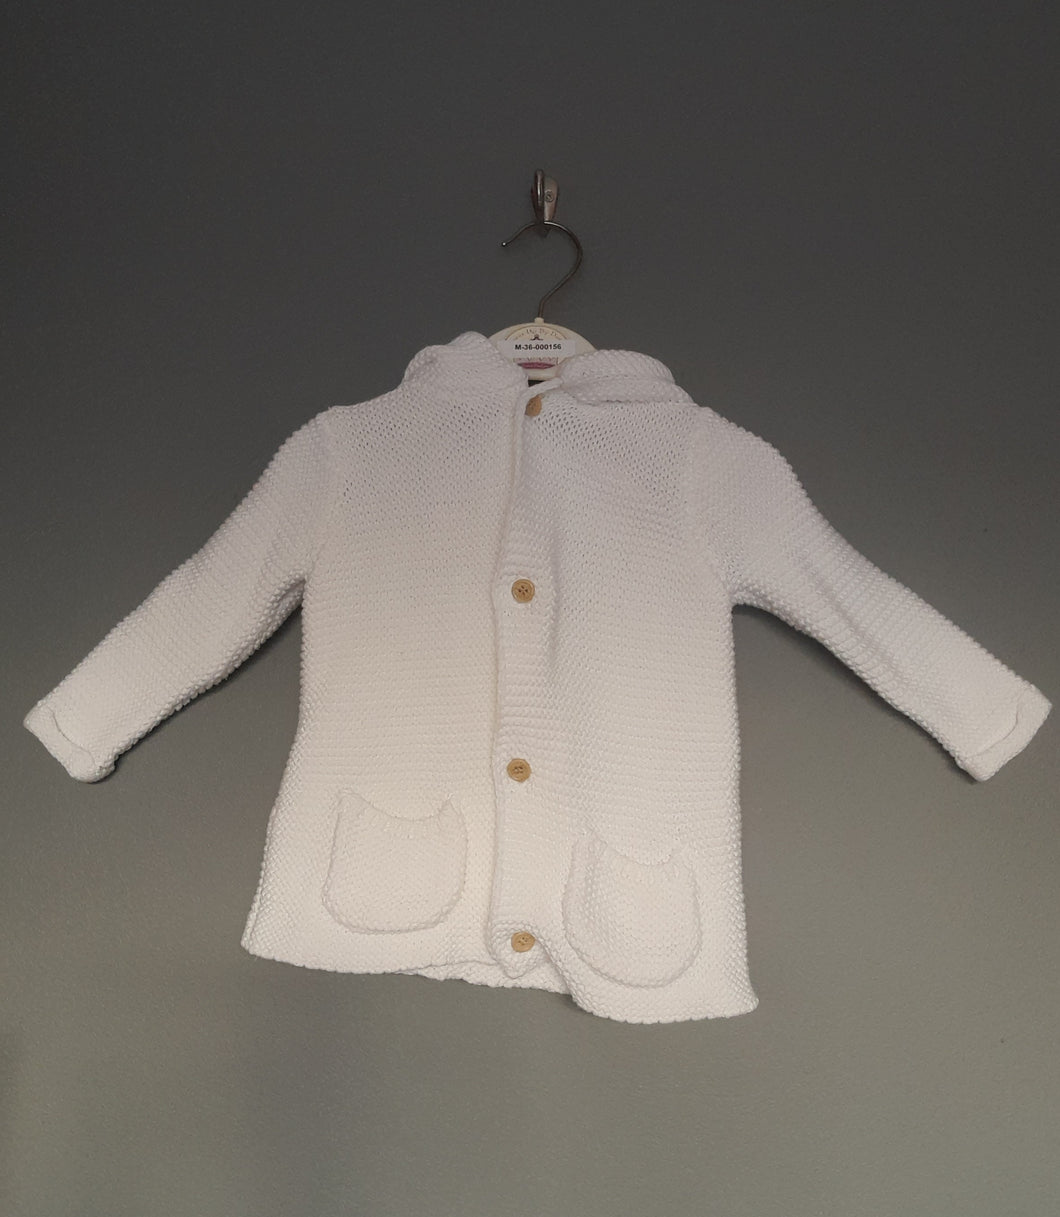 3-6 months white knitted hooded cardigan- George